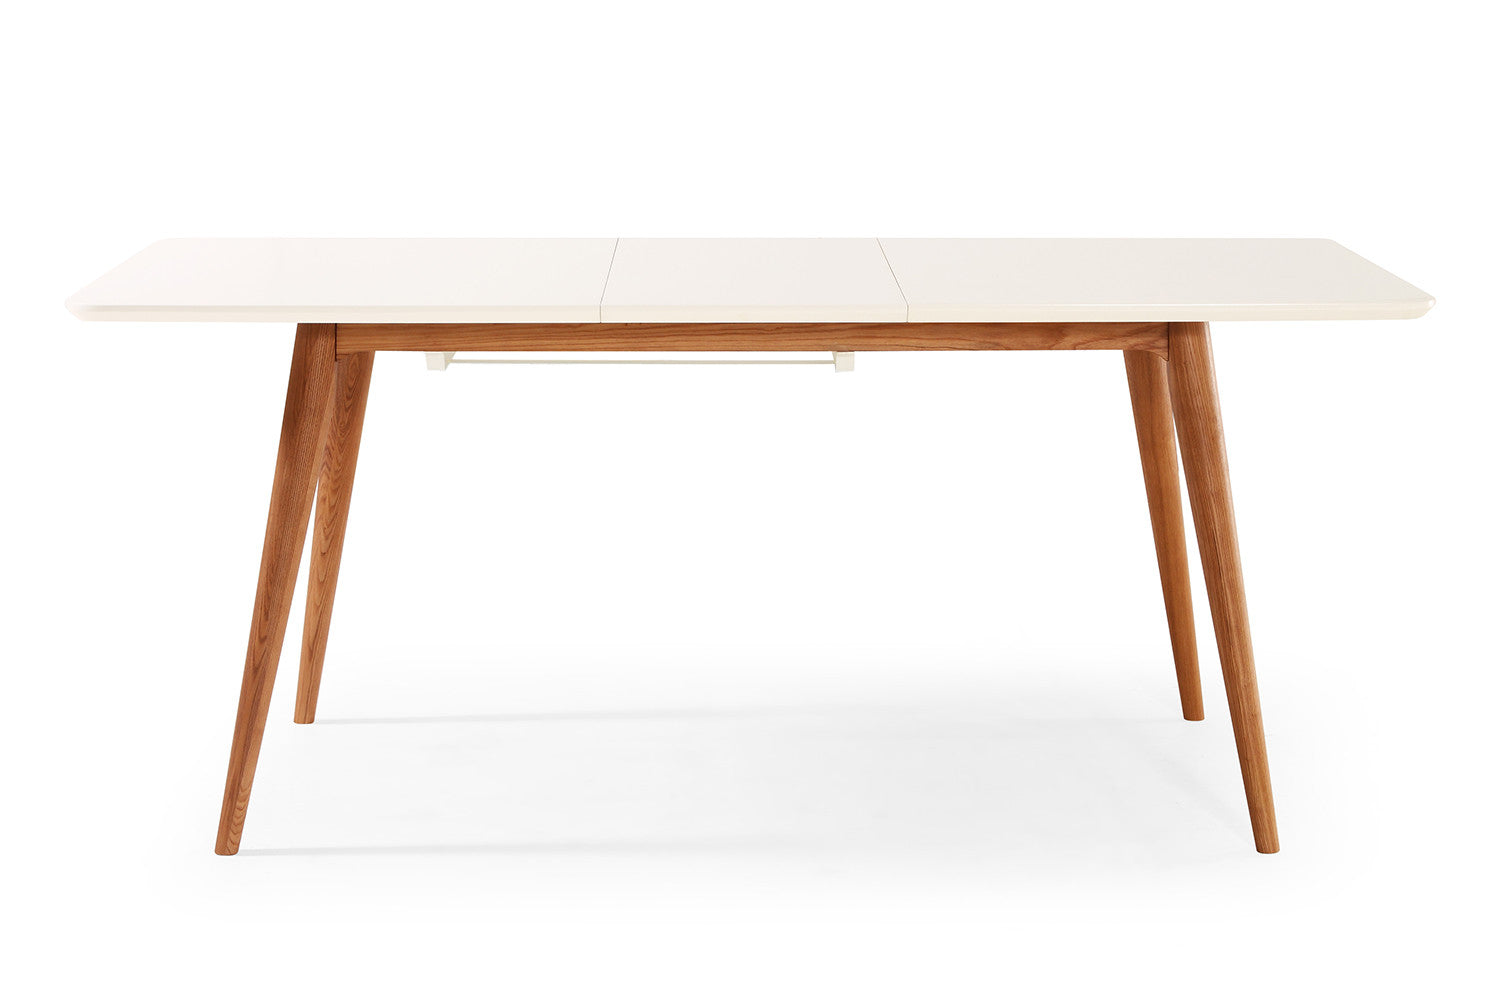 Table de salle manger extensible scandinave wyna dewarens for Table scandinave